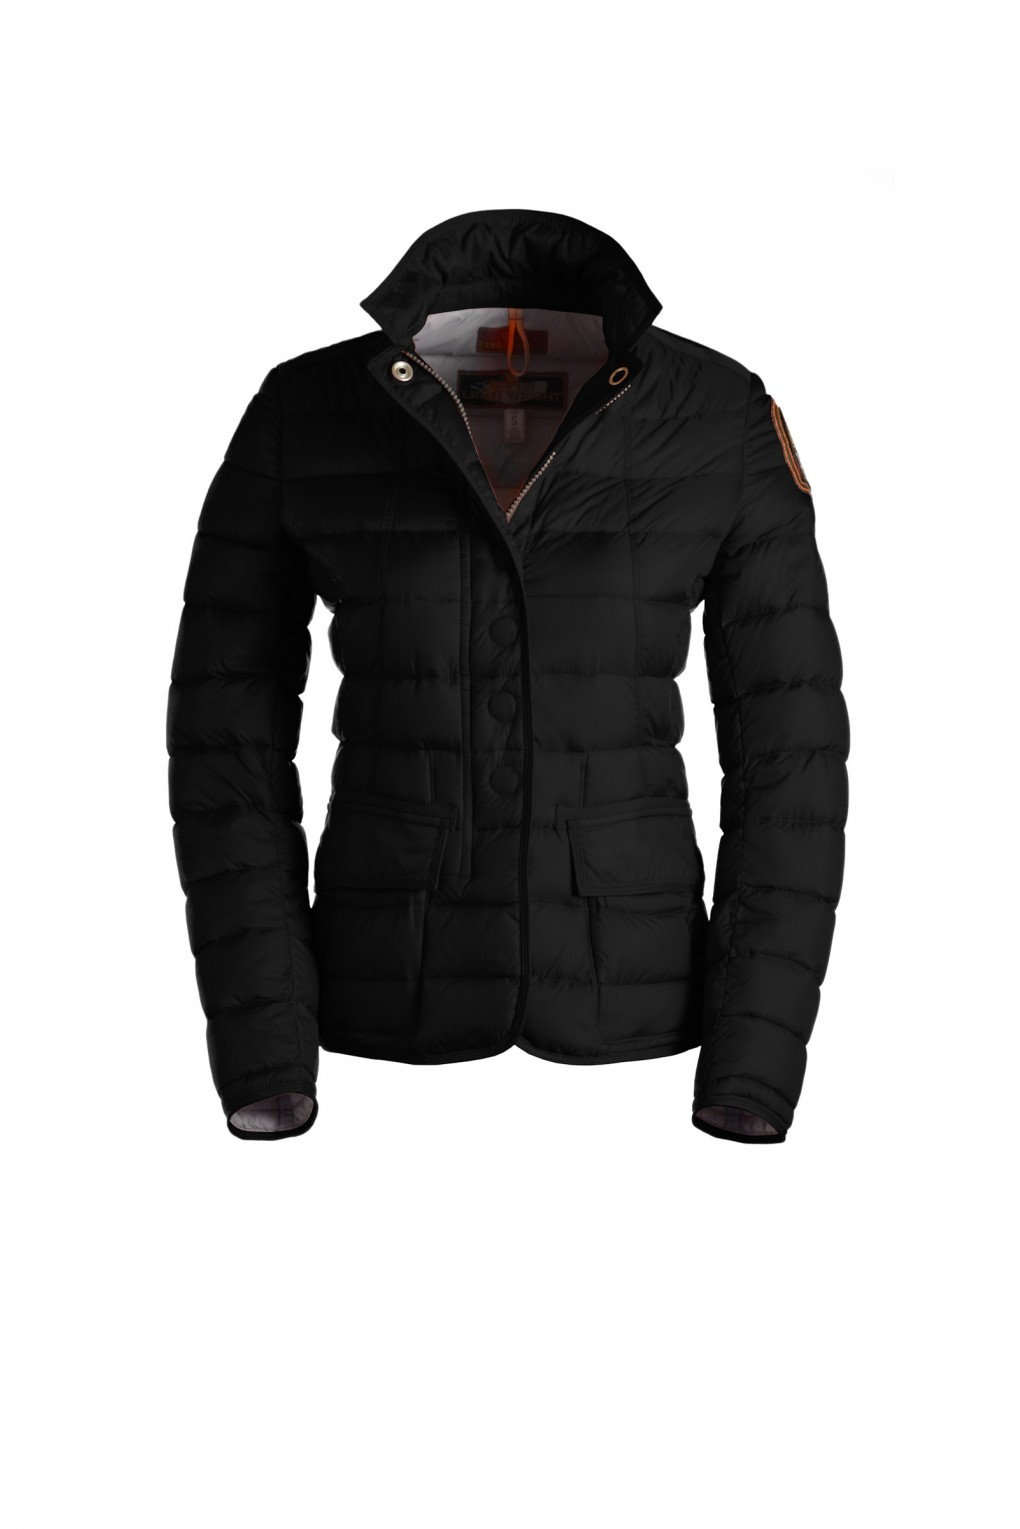 parajumpers ALISEE 6 woman outerwear Black